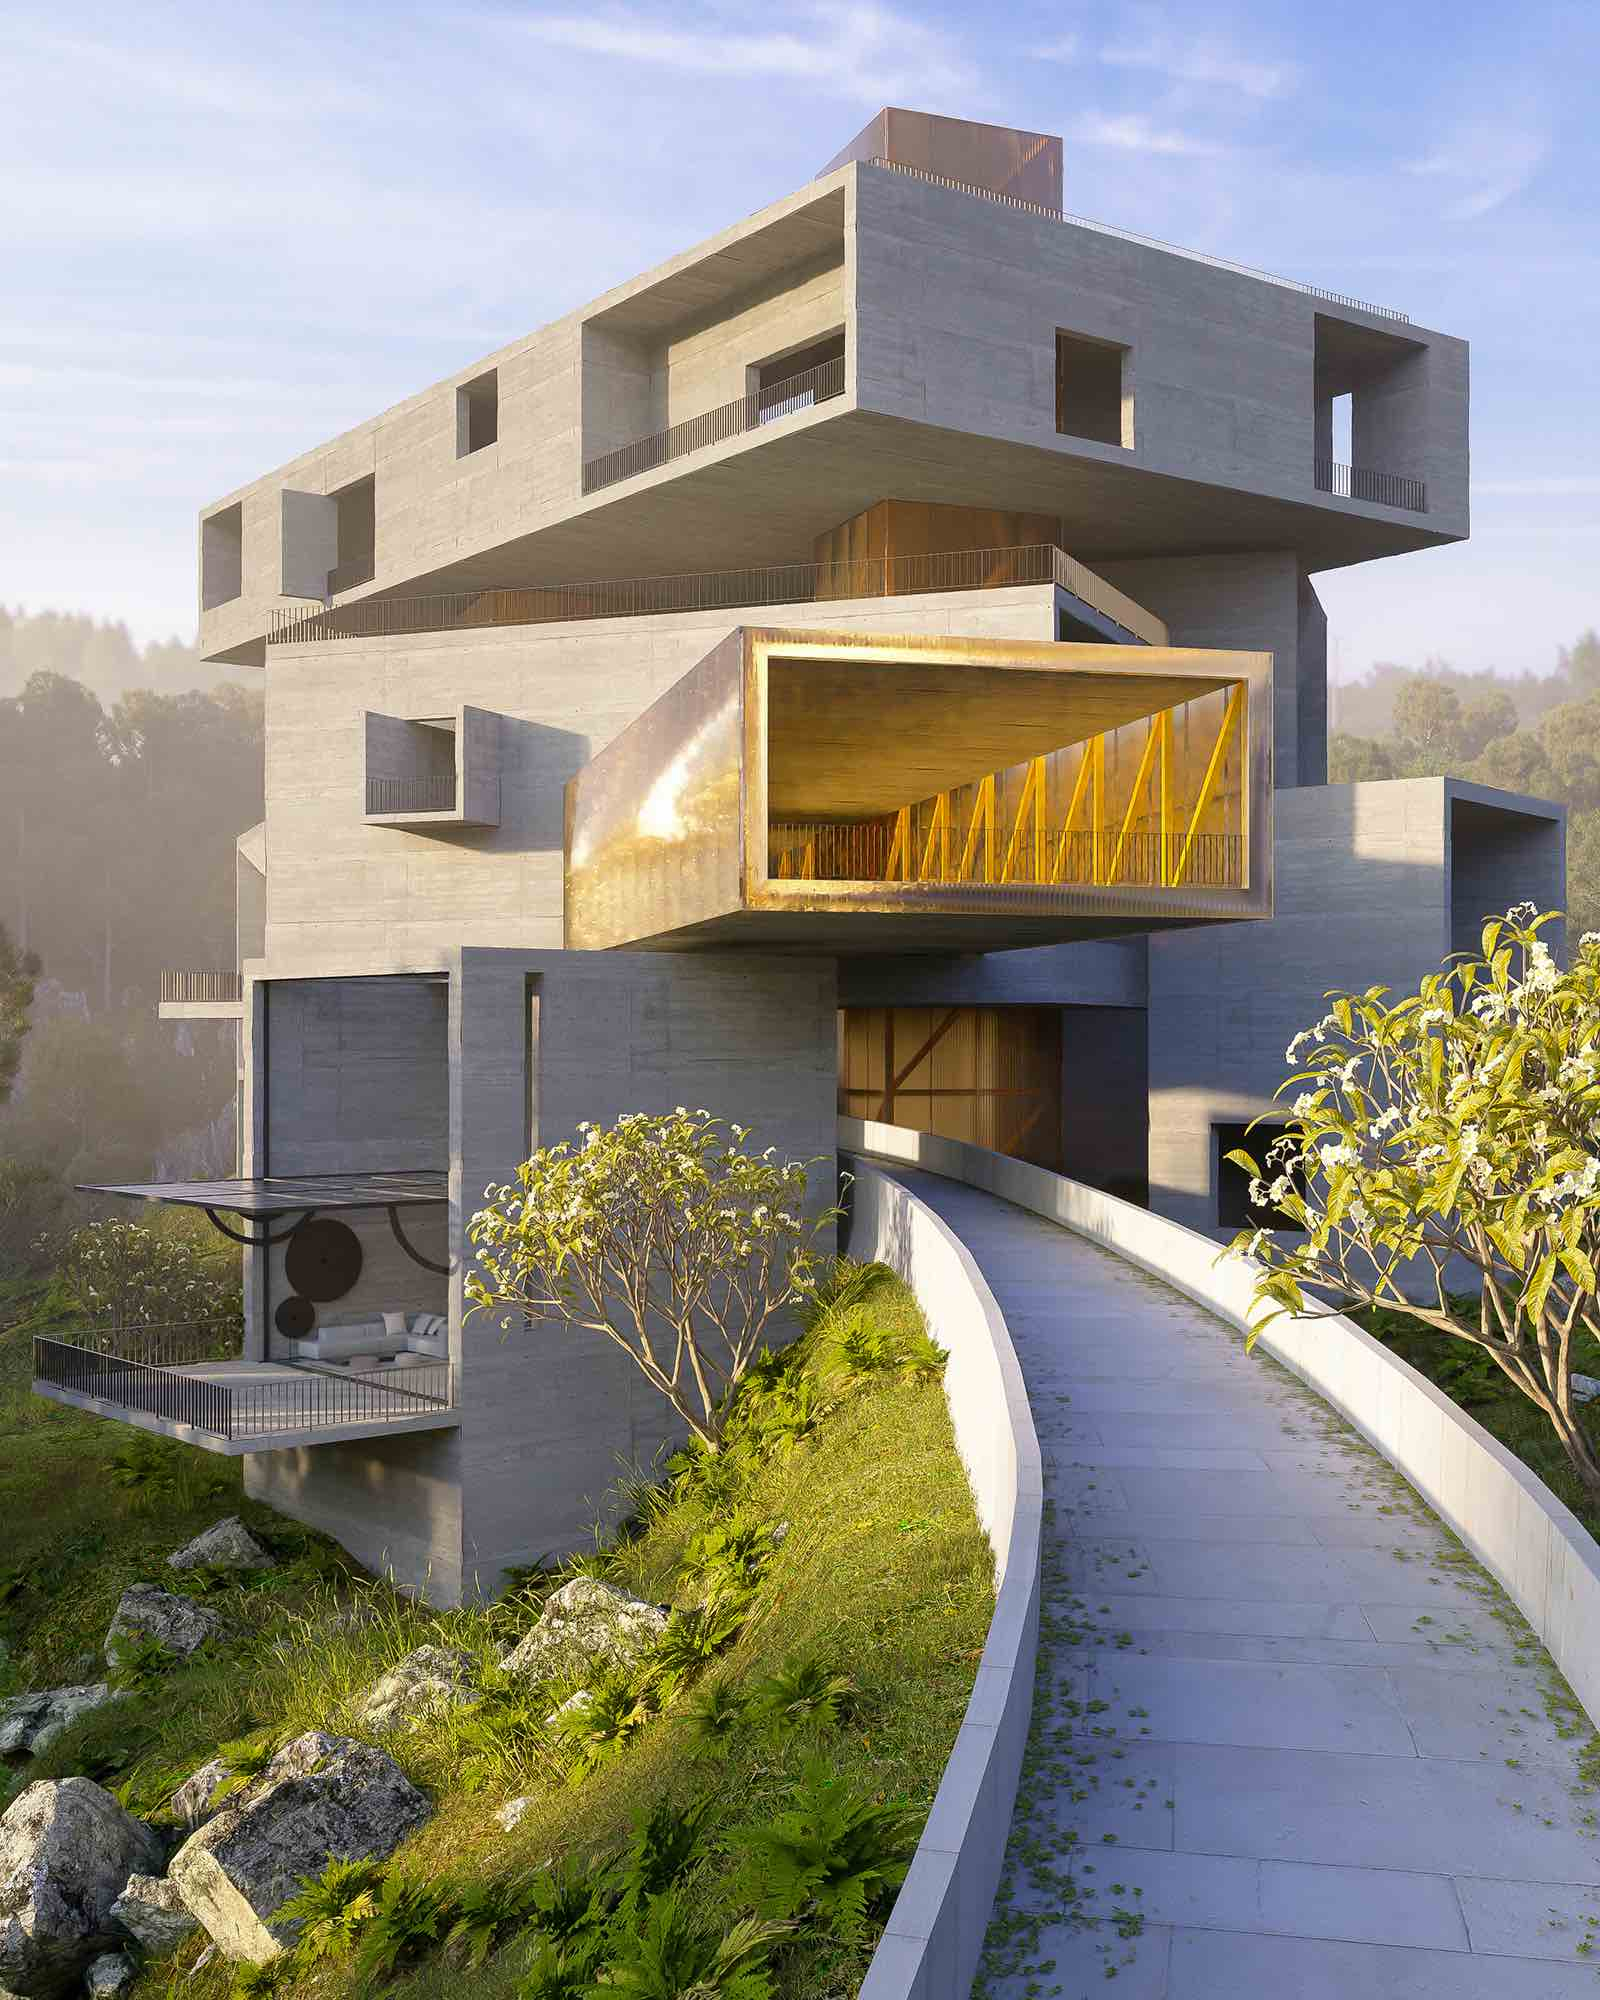 concrete structure with shape of boxes